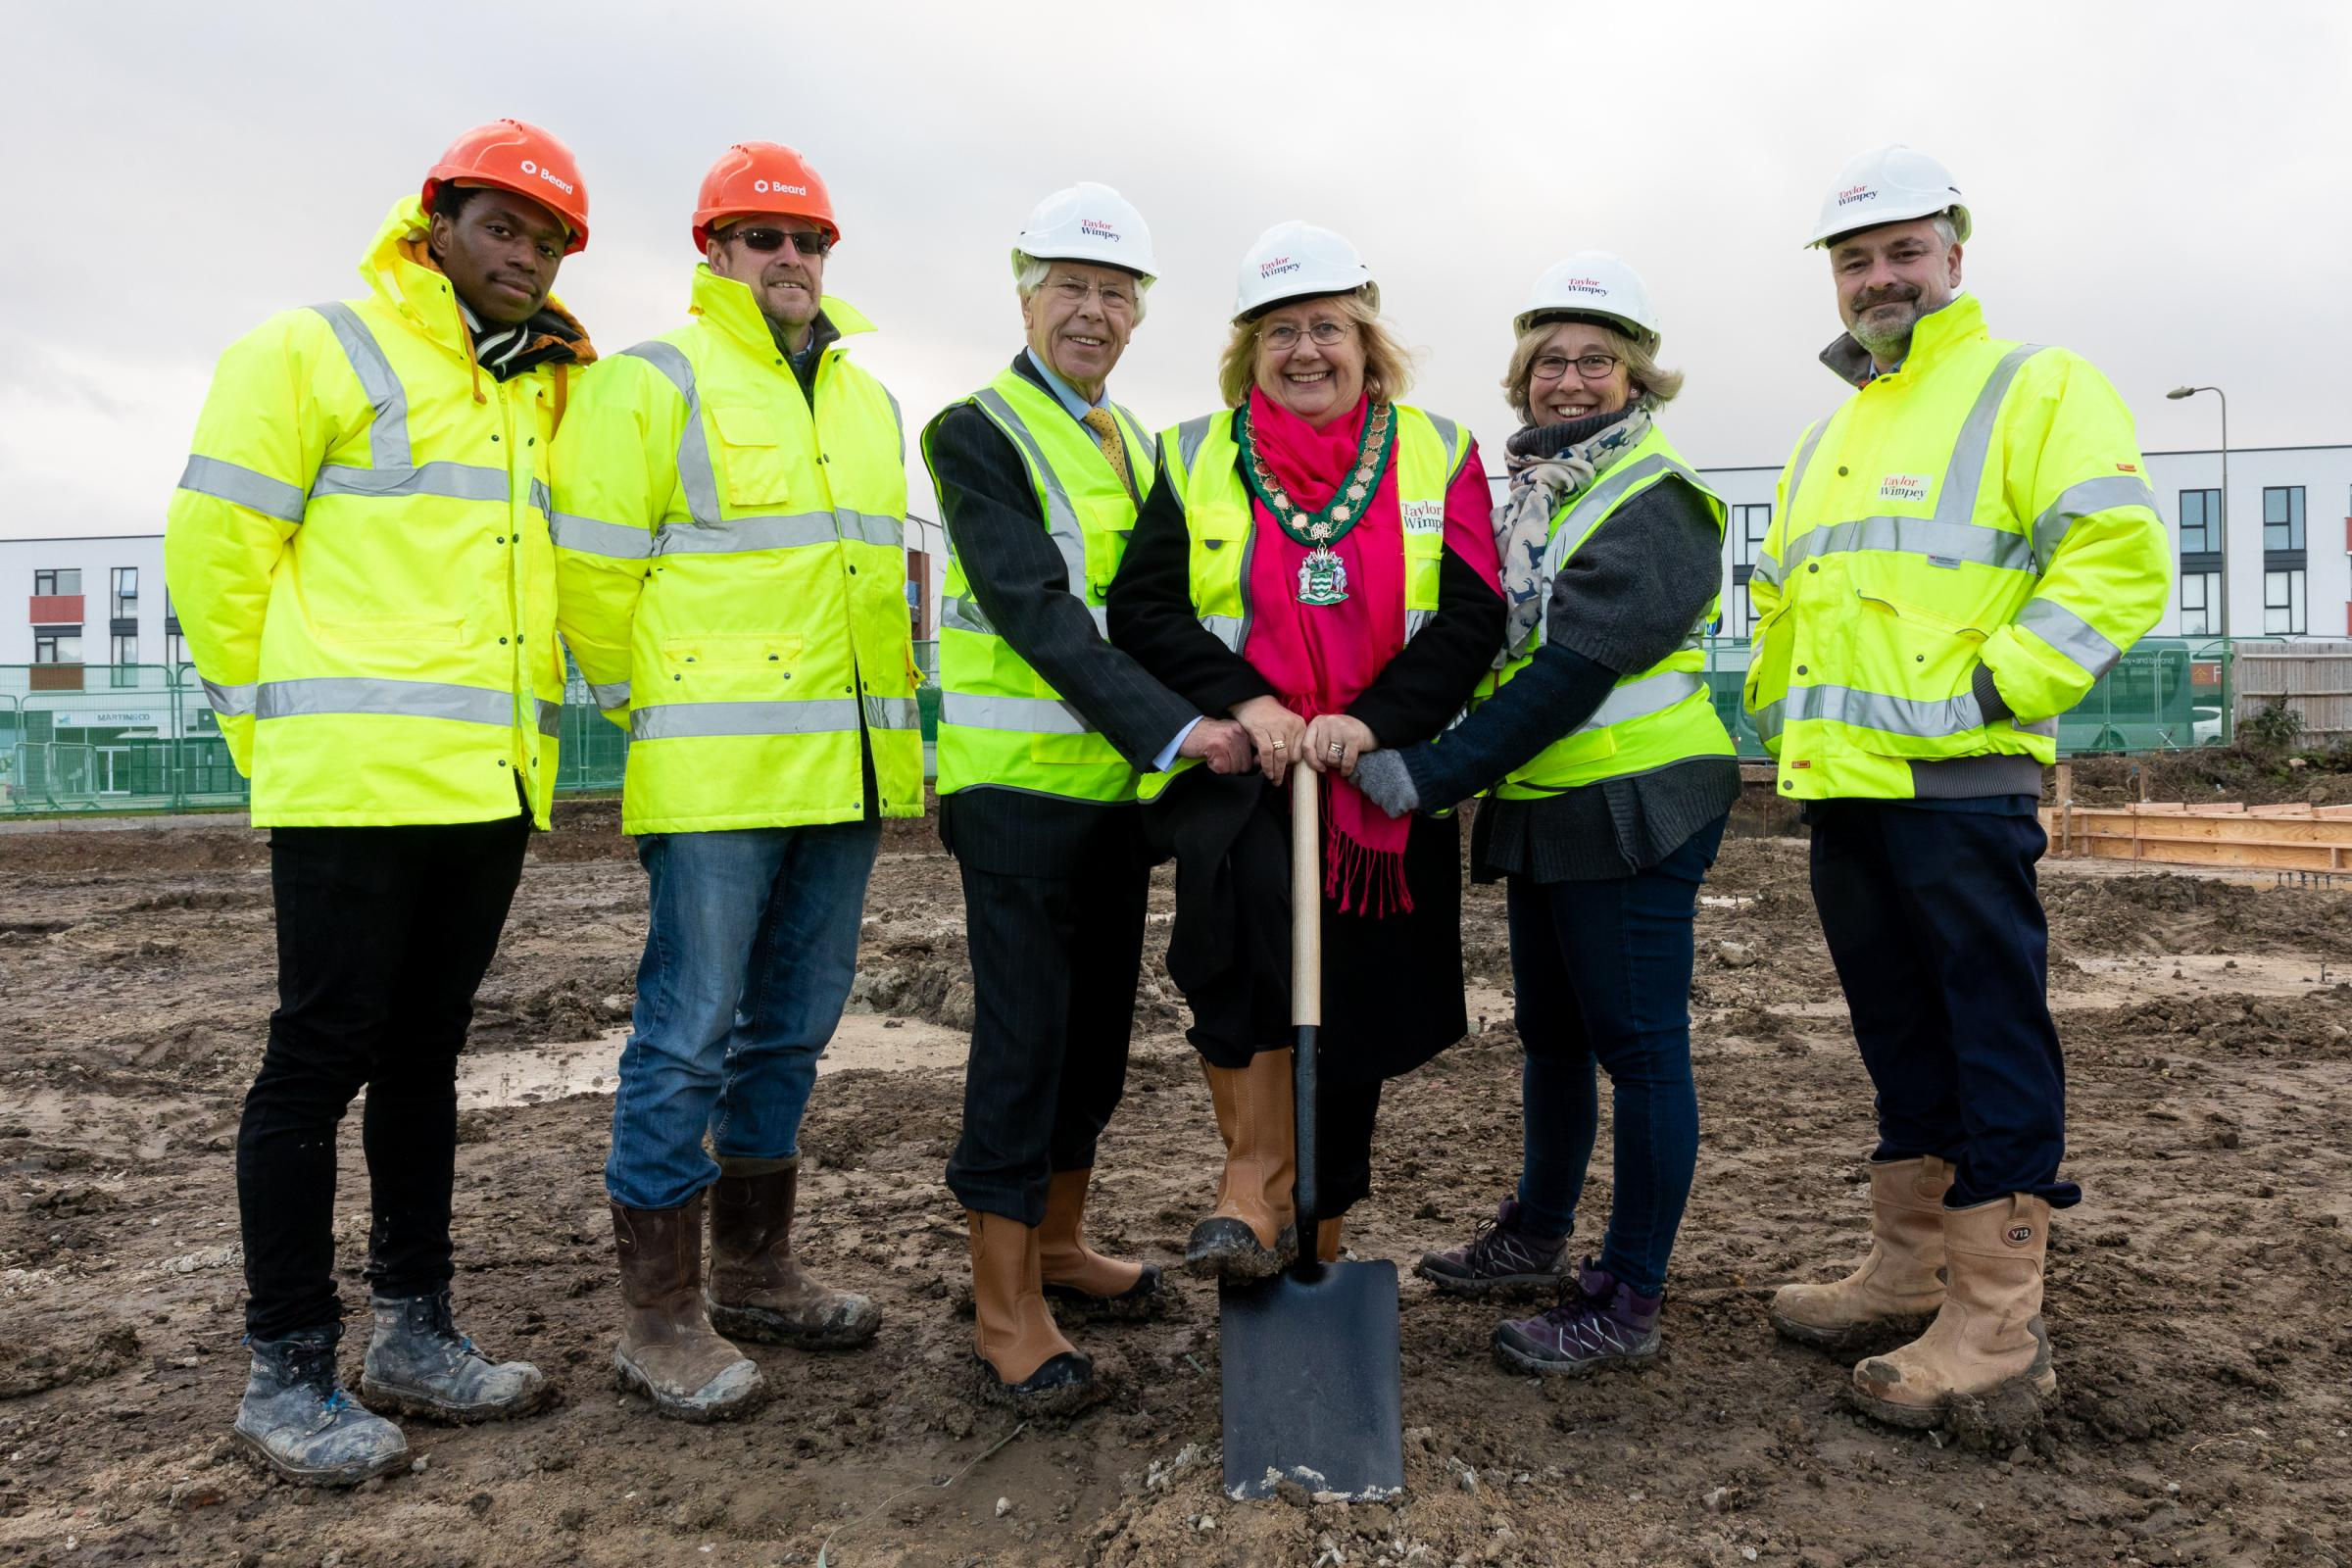 Left to right: Morgan John and Adam Baldwin of Beard Construction, Cllr Reg Waite, Cllr Monica Lovatt, Cllr Debbie Turner, and Mark Edmonds of Taylor Wimpey Oxfordshire. Picture: Redhouse Photography